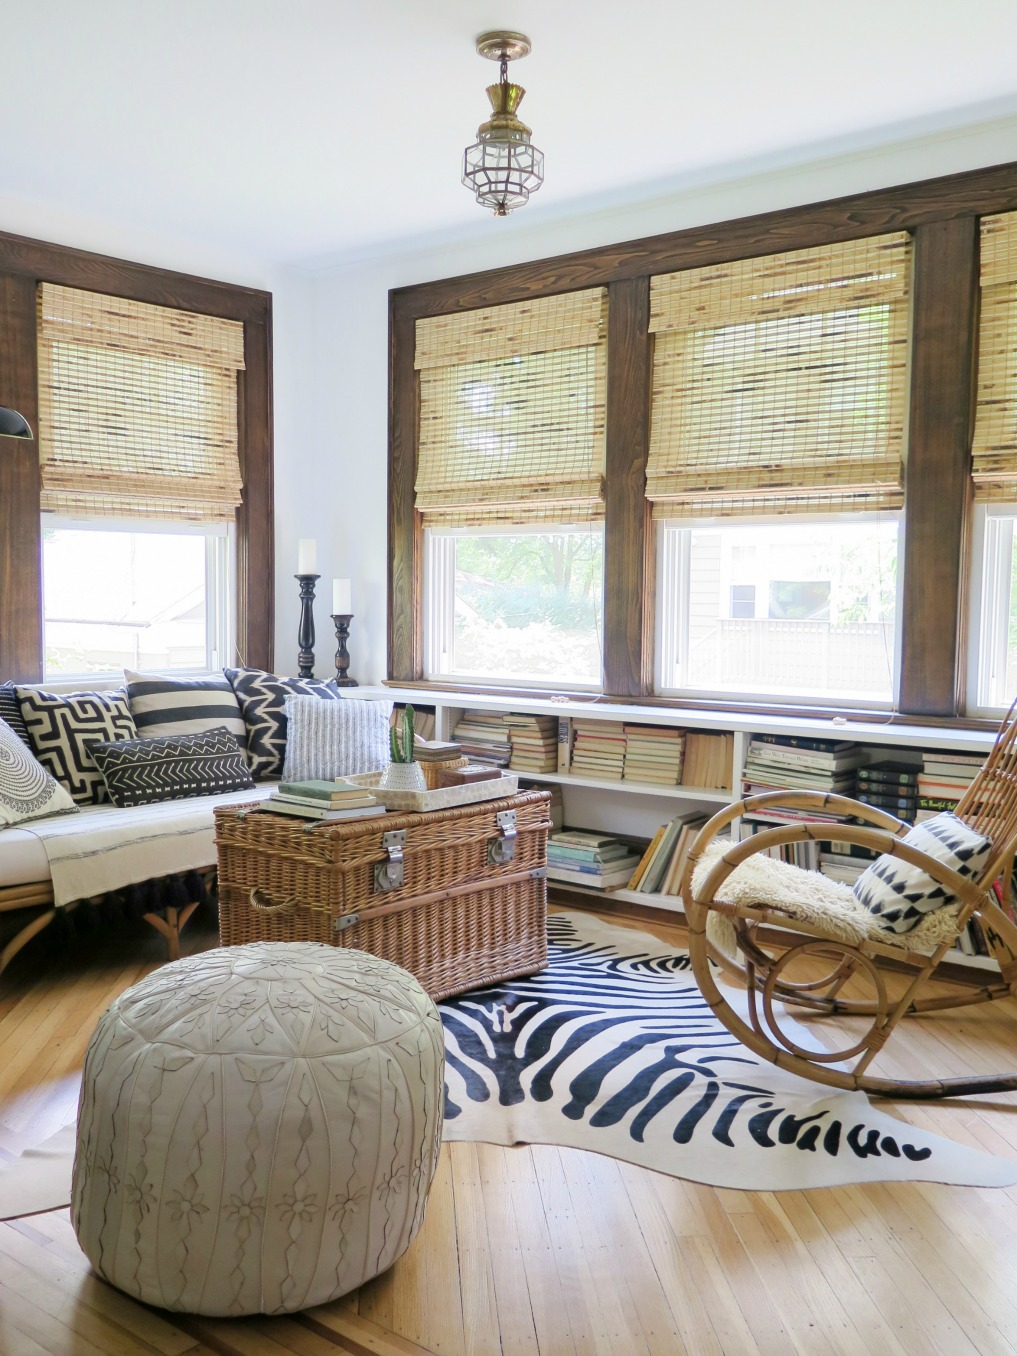 Eclectic Home Tour of Verdoir - tour this 1920's home with a boho, eclectic feel